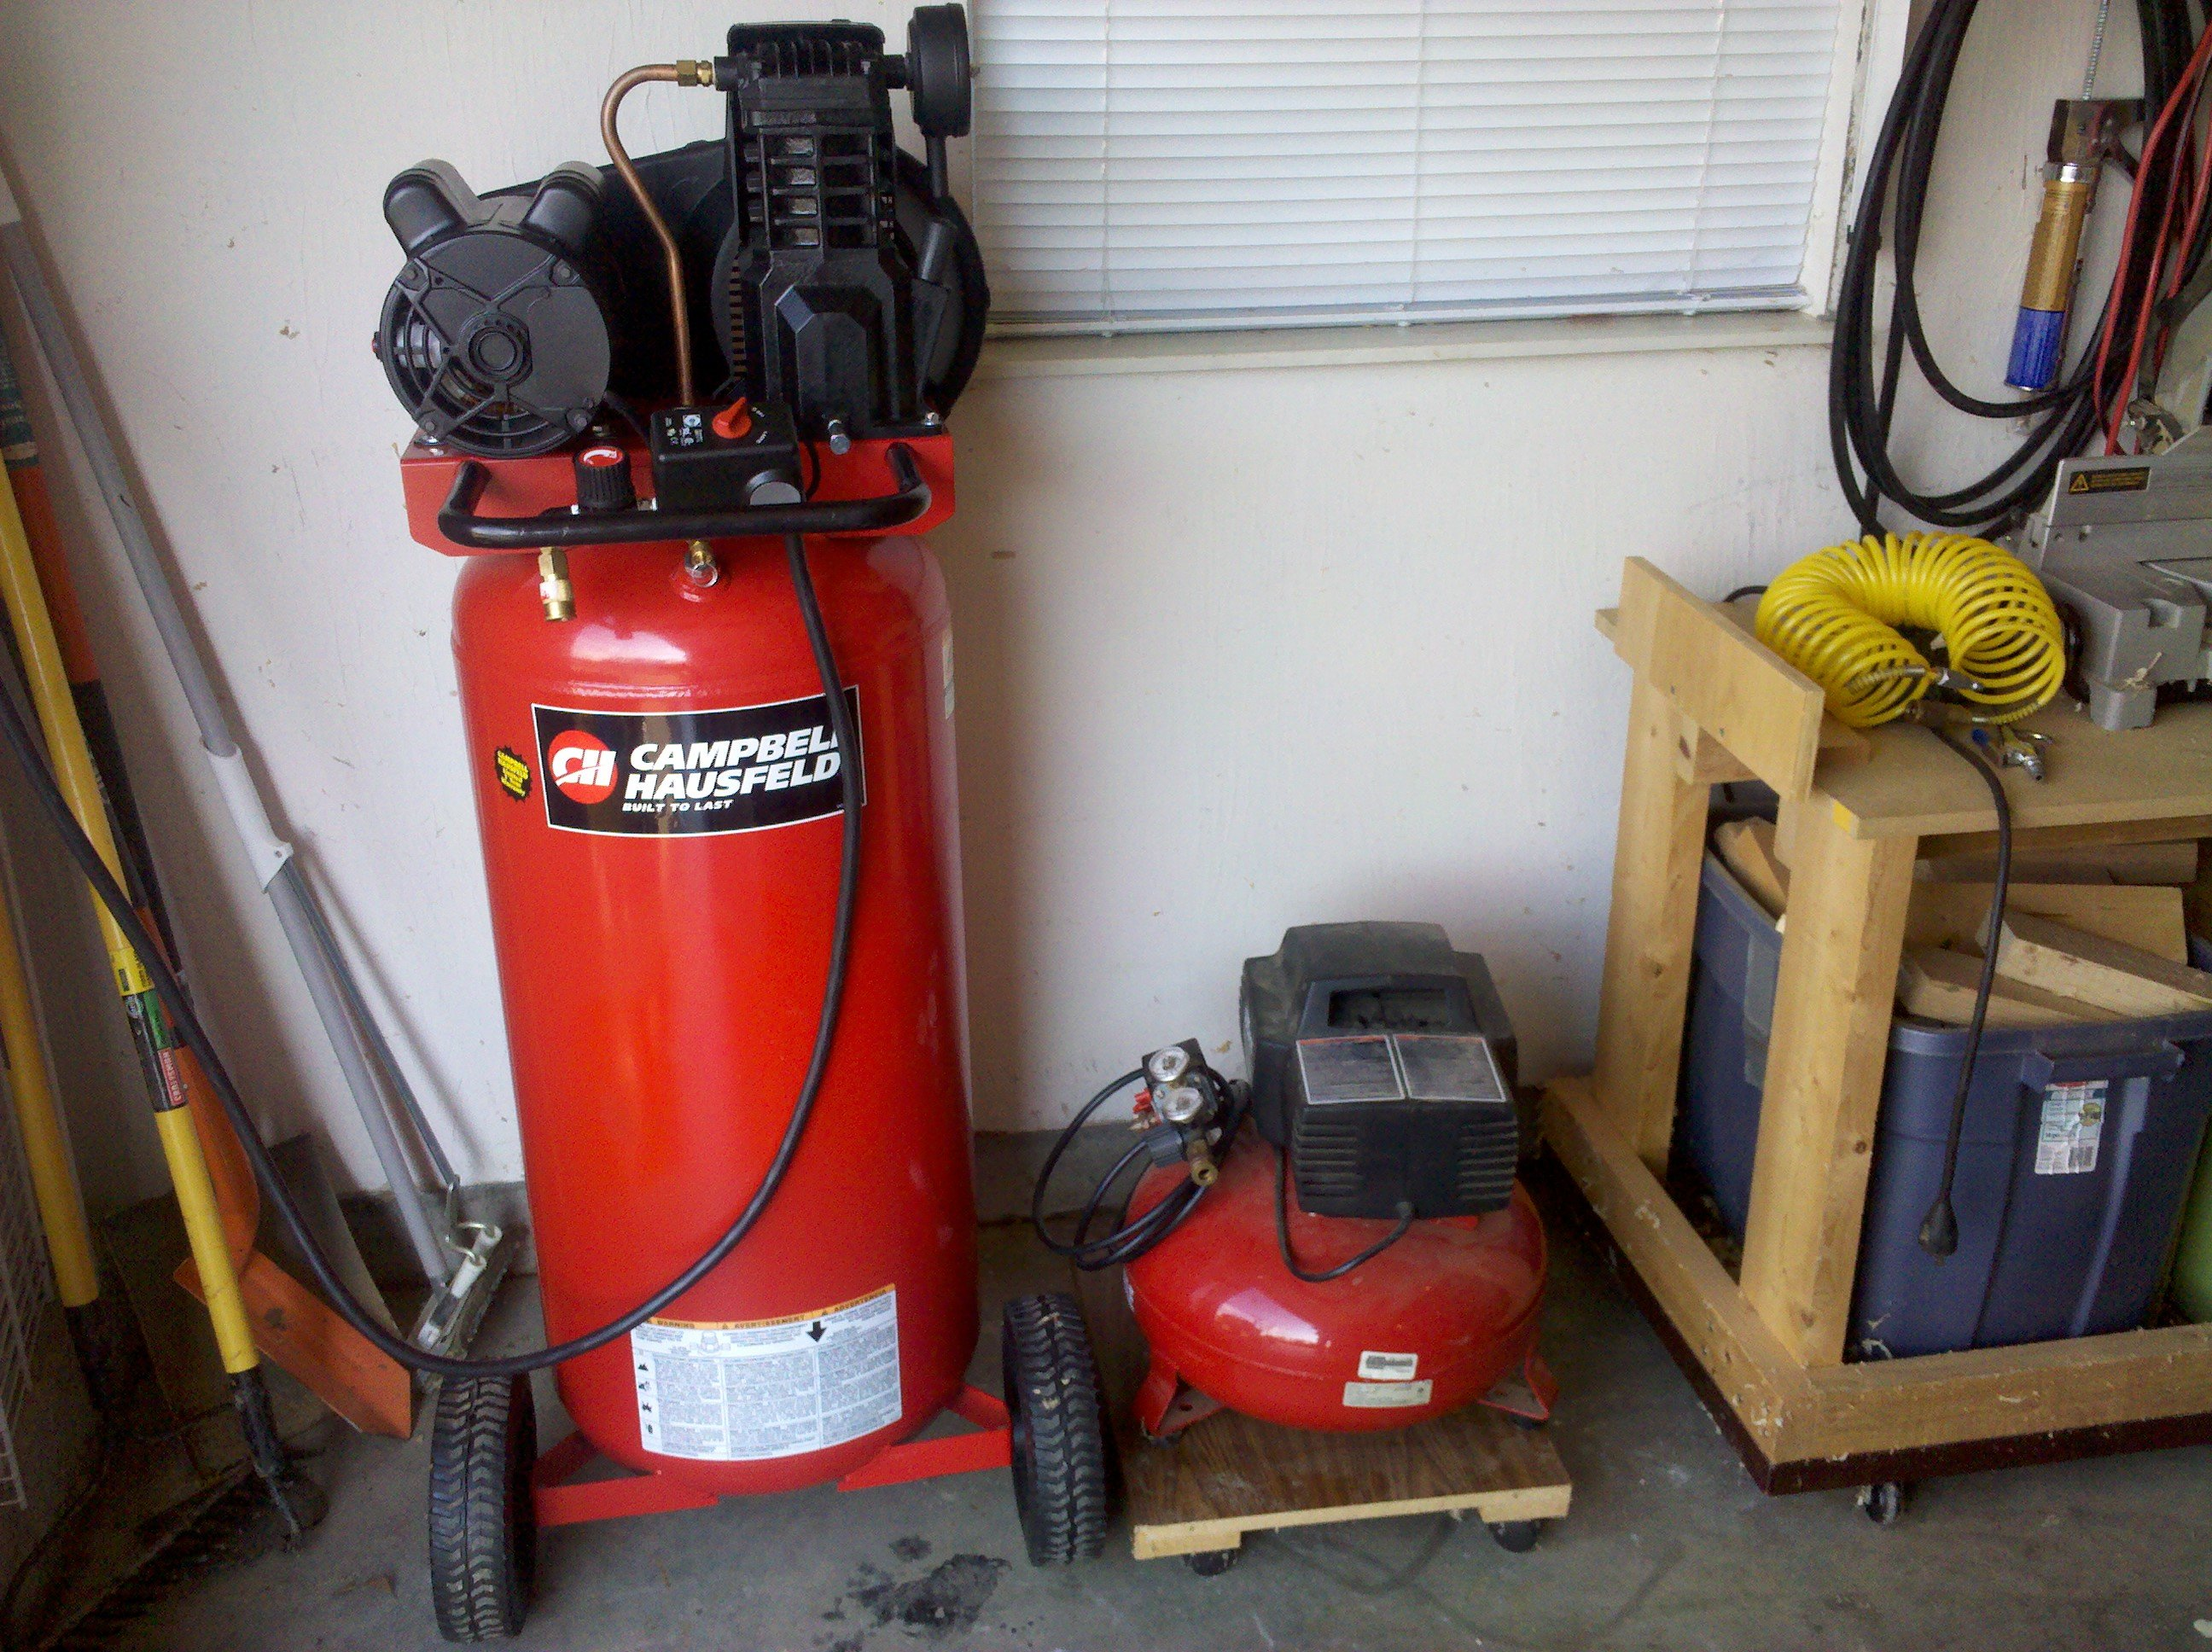 Week One with the New Air Compressor